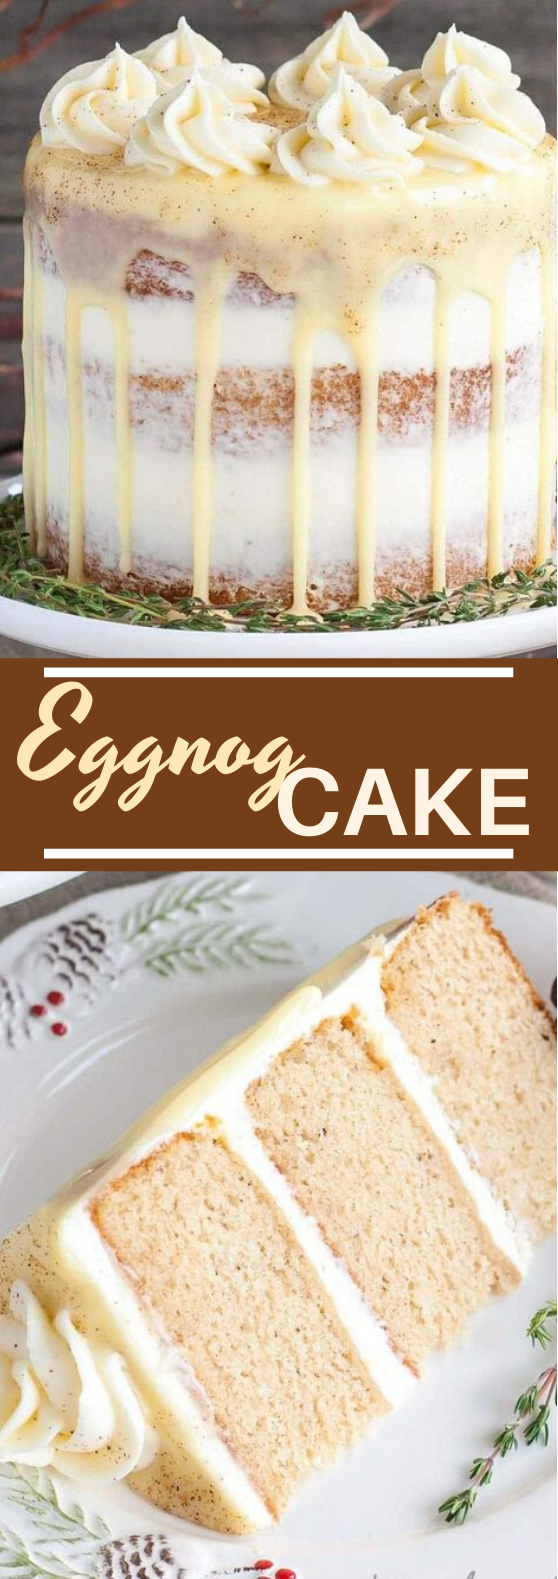 Eggnog Cake #cake #desserts #baking #christmas #recipes